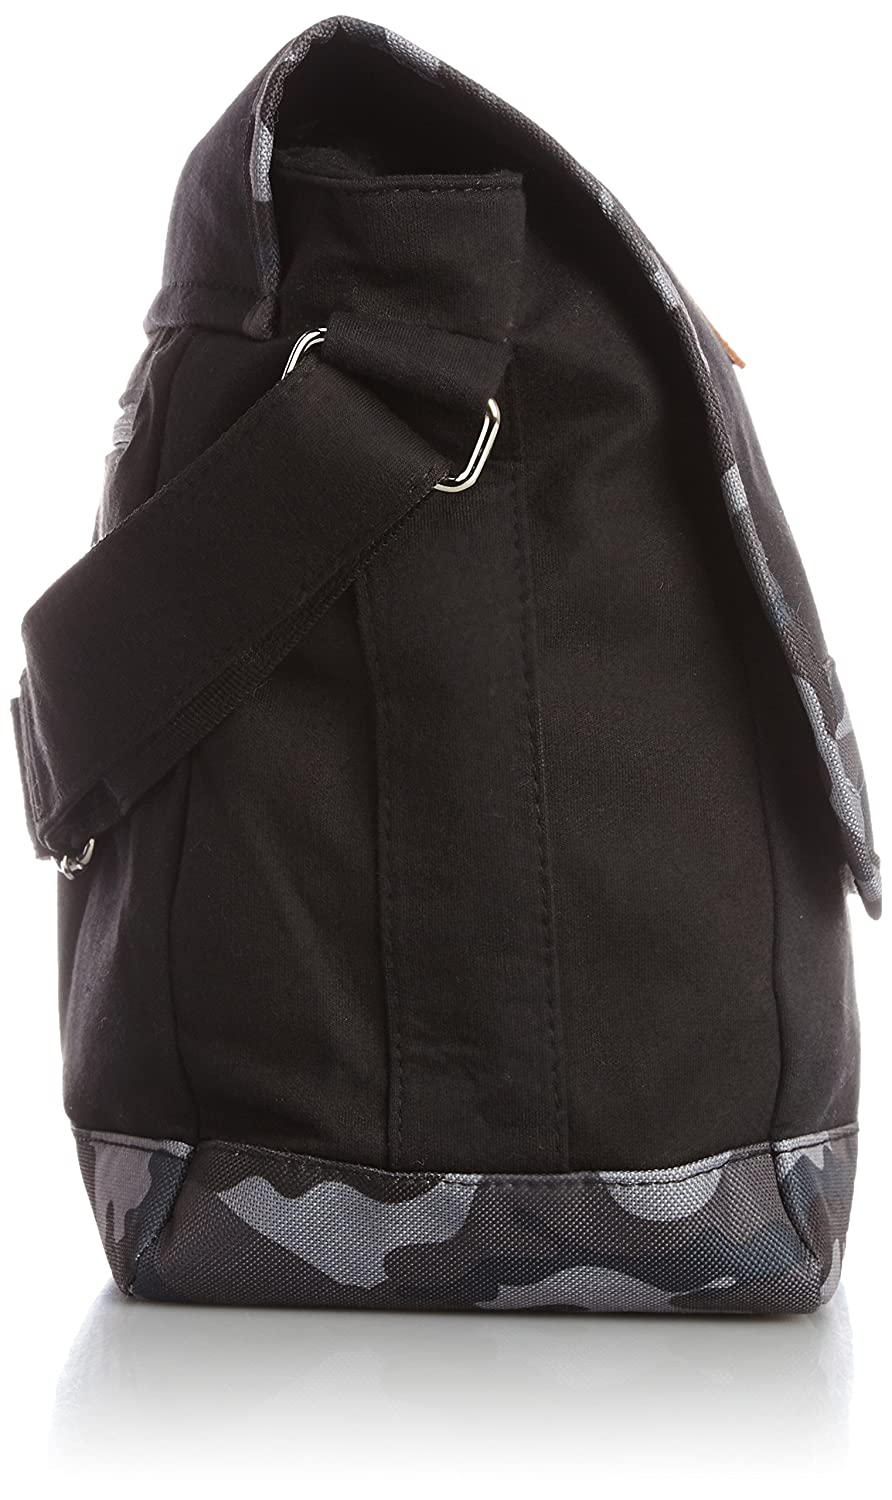 ALPHA INDUSTRIES Sweat CM-3 flap shoulder bag